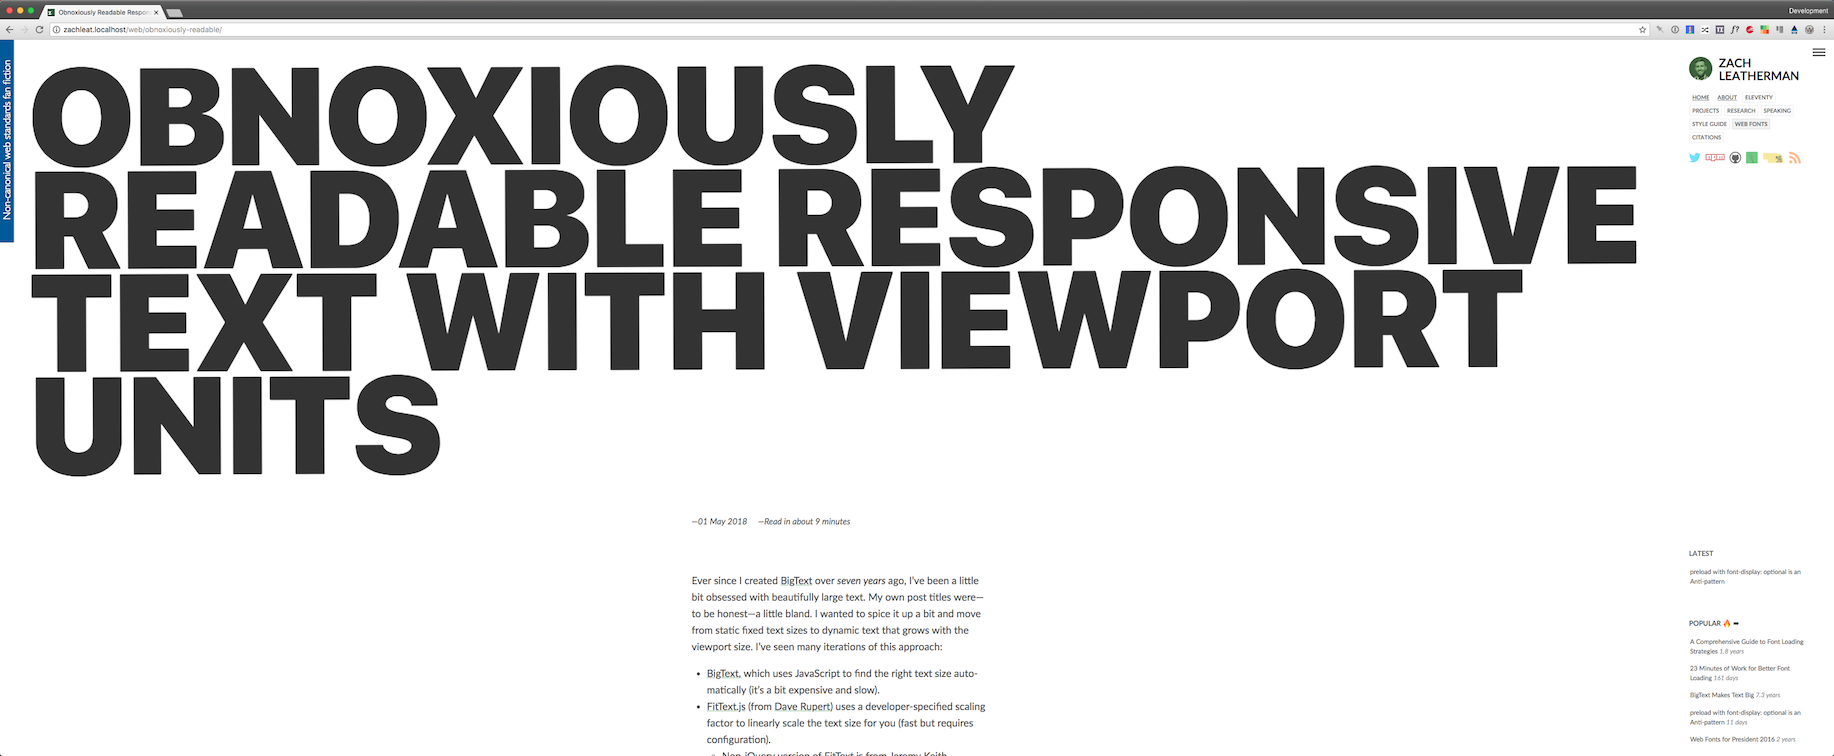 Giant Viewport Preview of the Blog Post Title